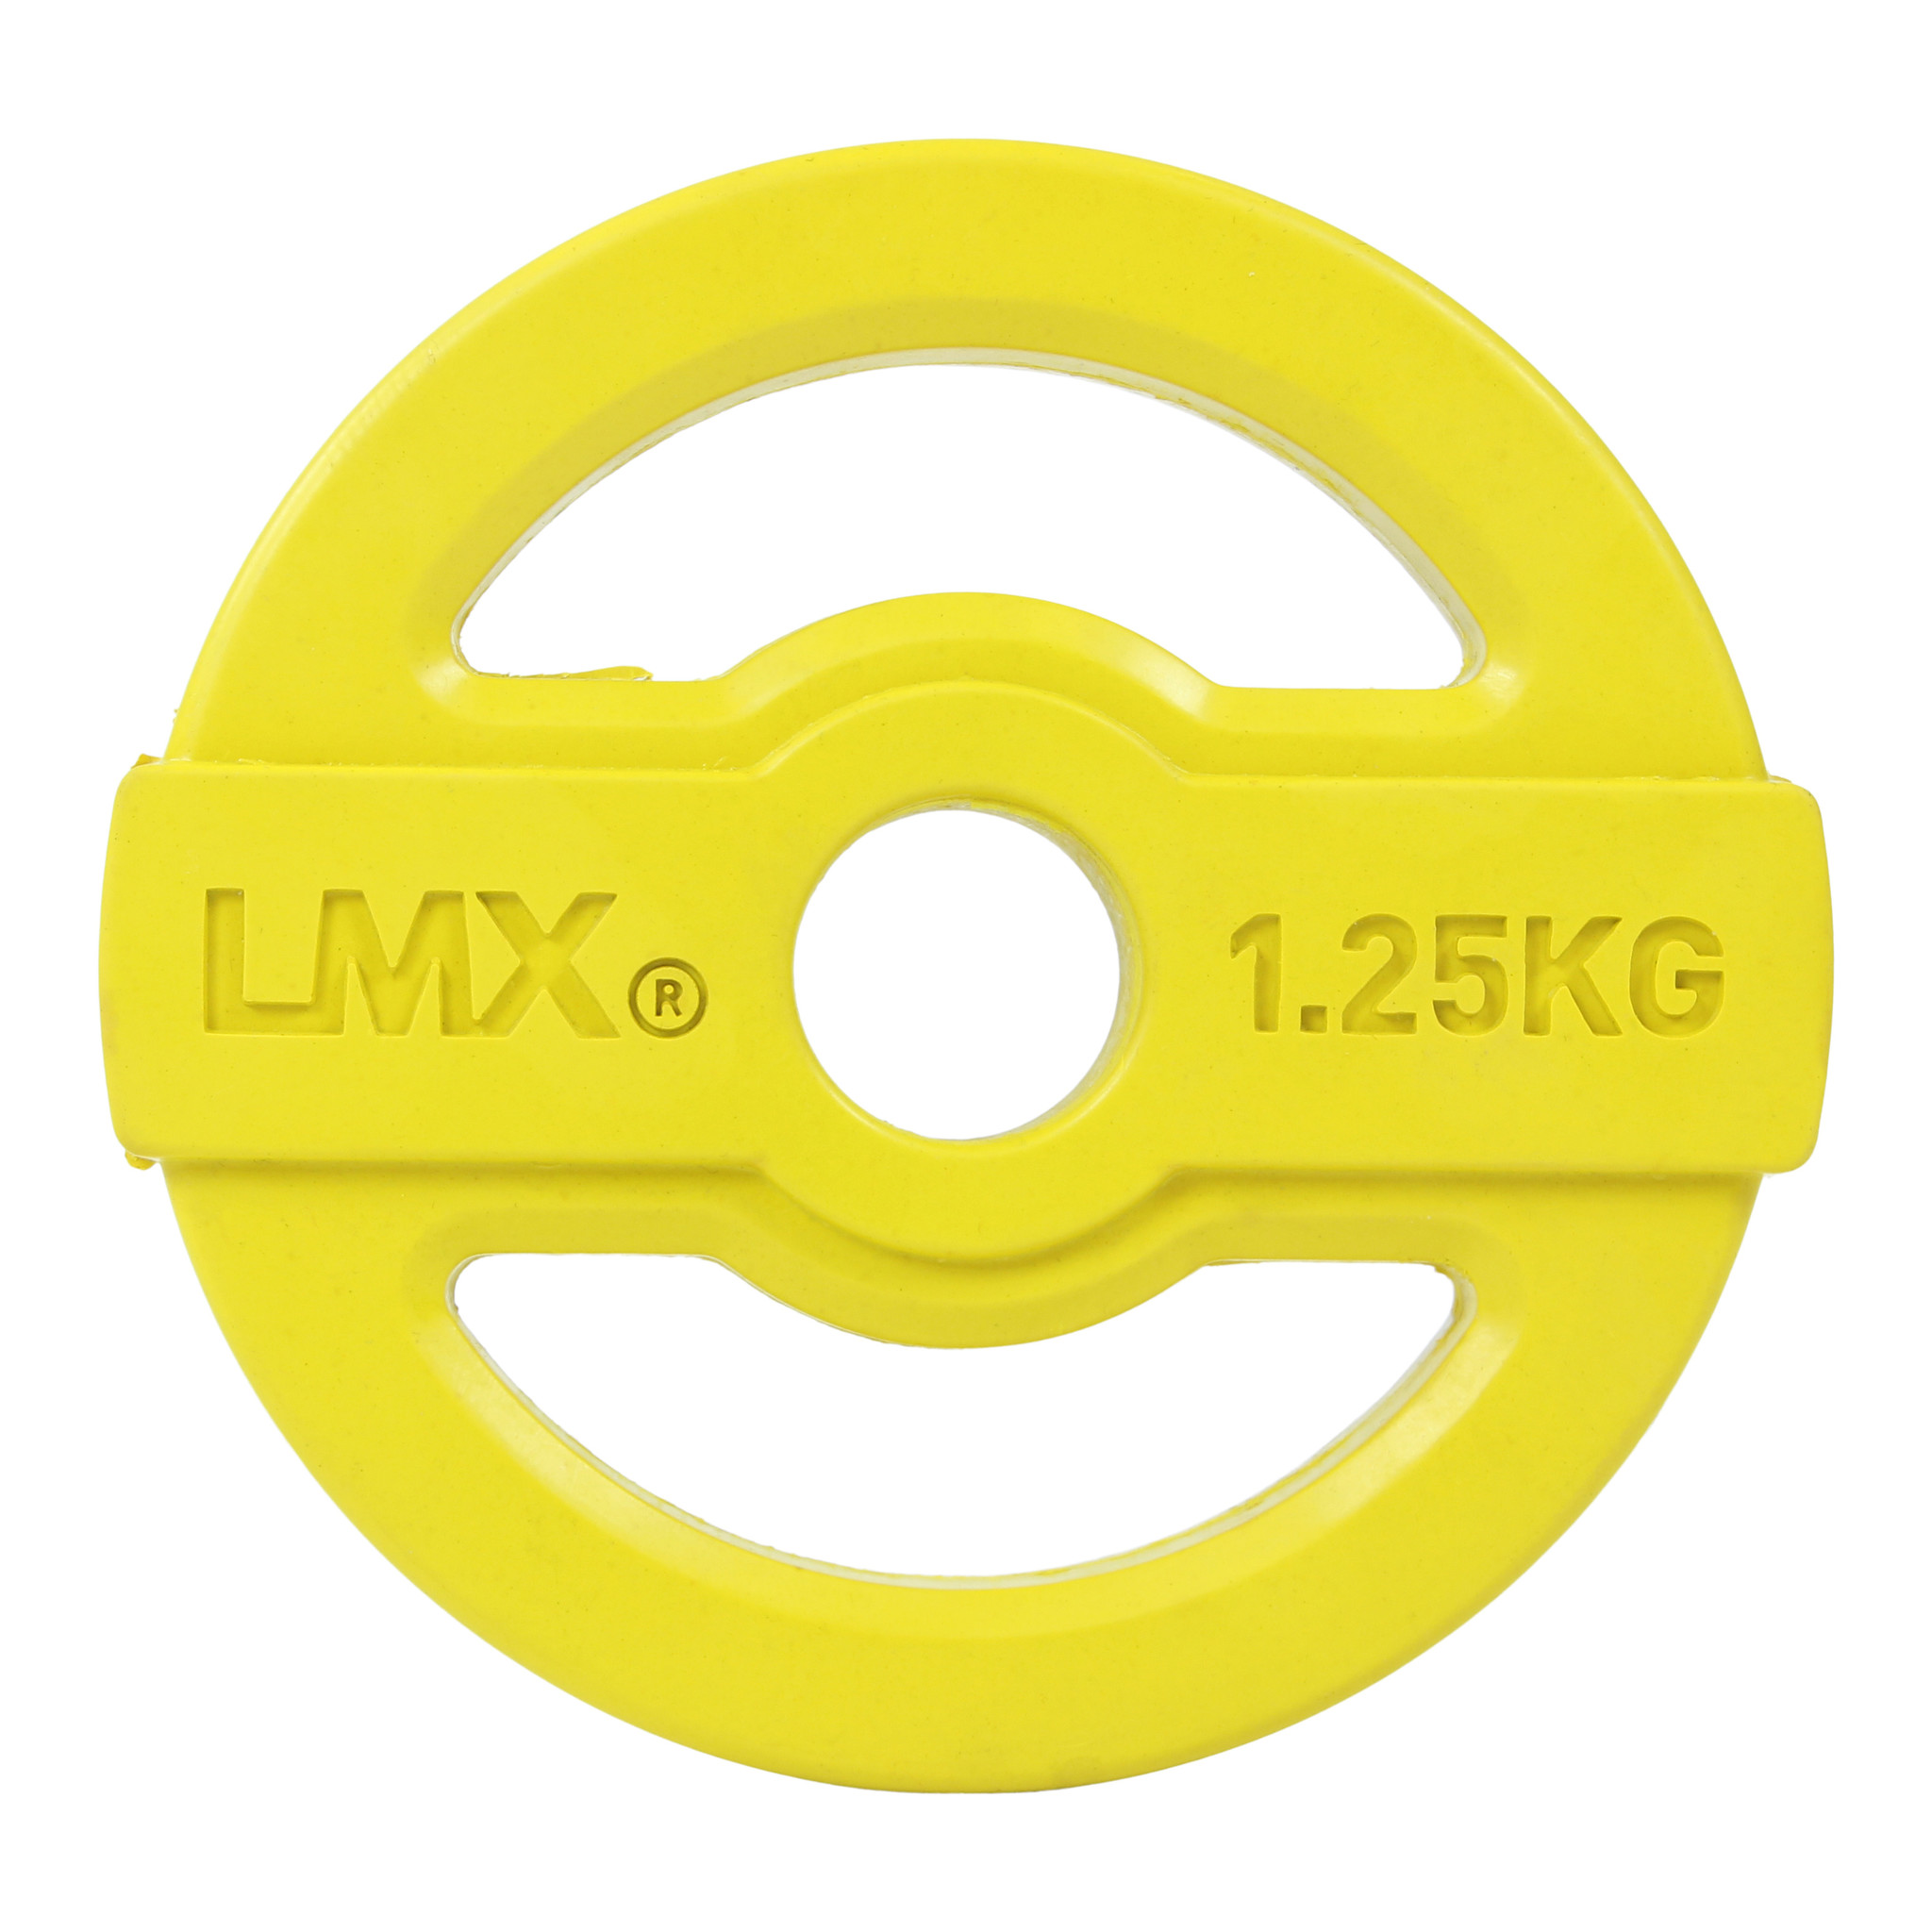 LMX.® LMX1135 LMX. Studio Pump discs COLOUR (1,25 - 10kg)